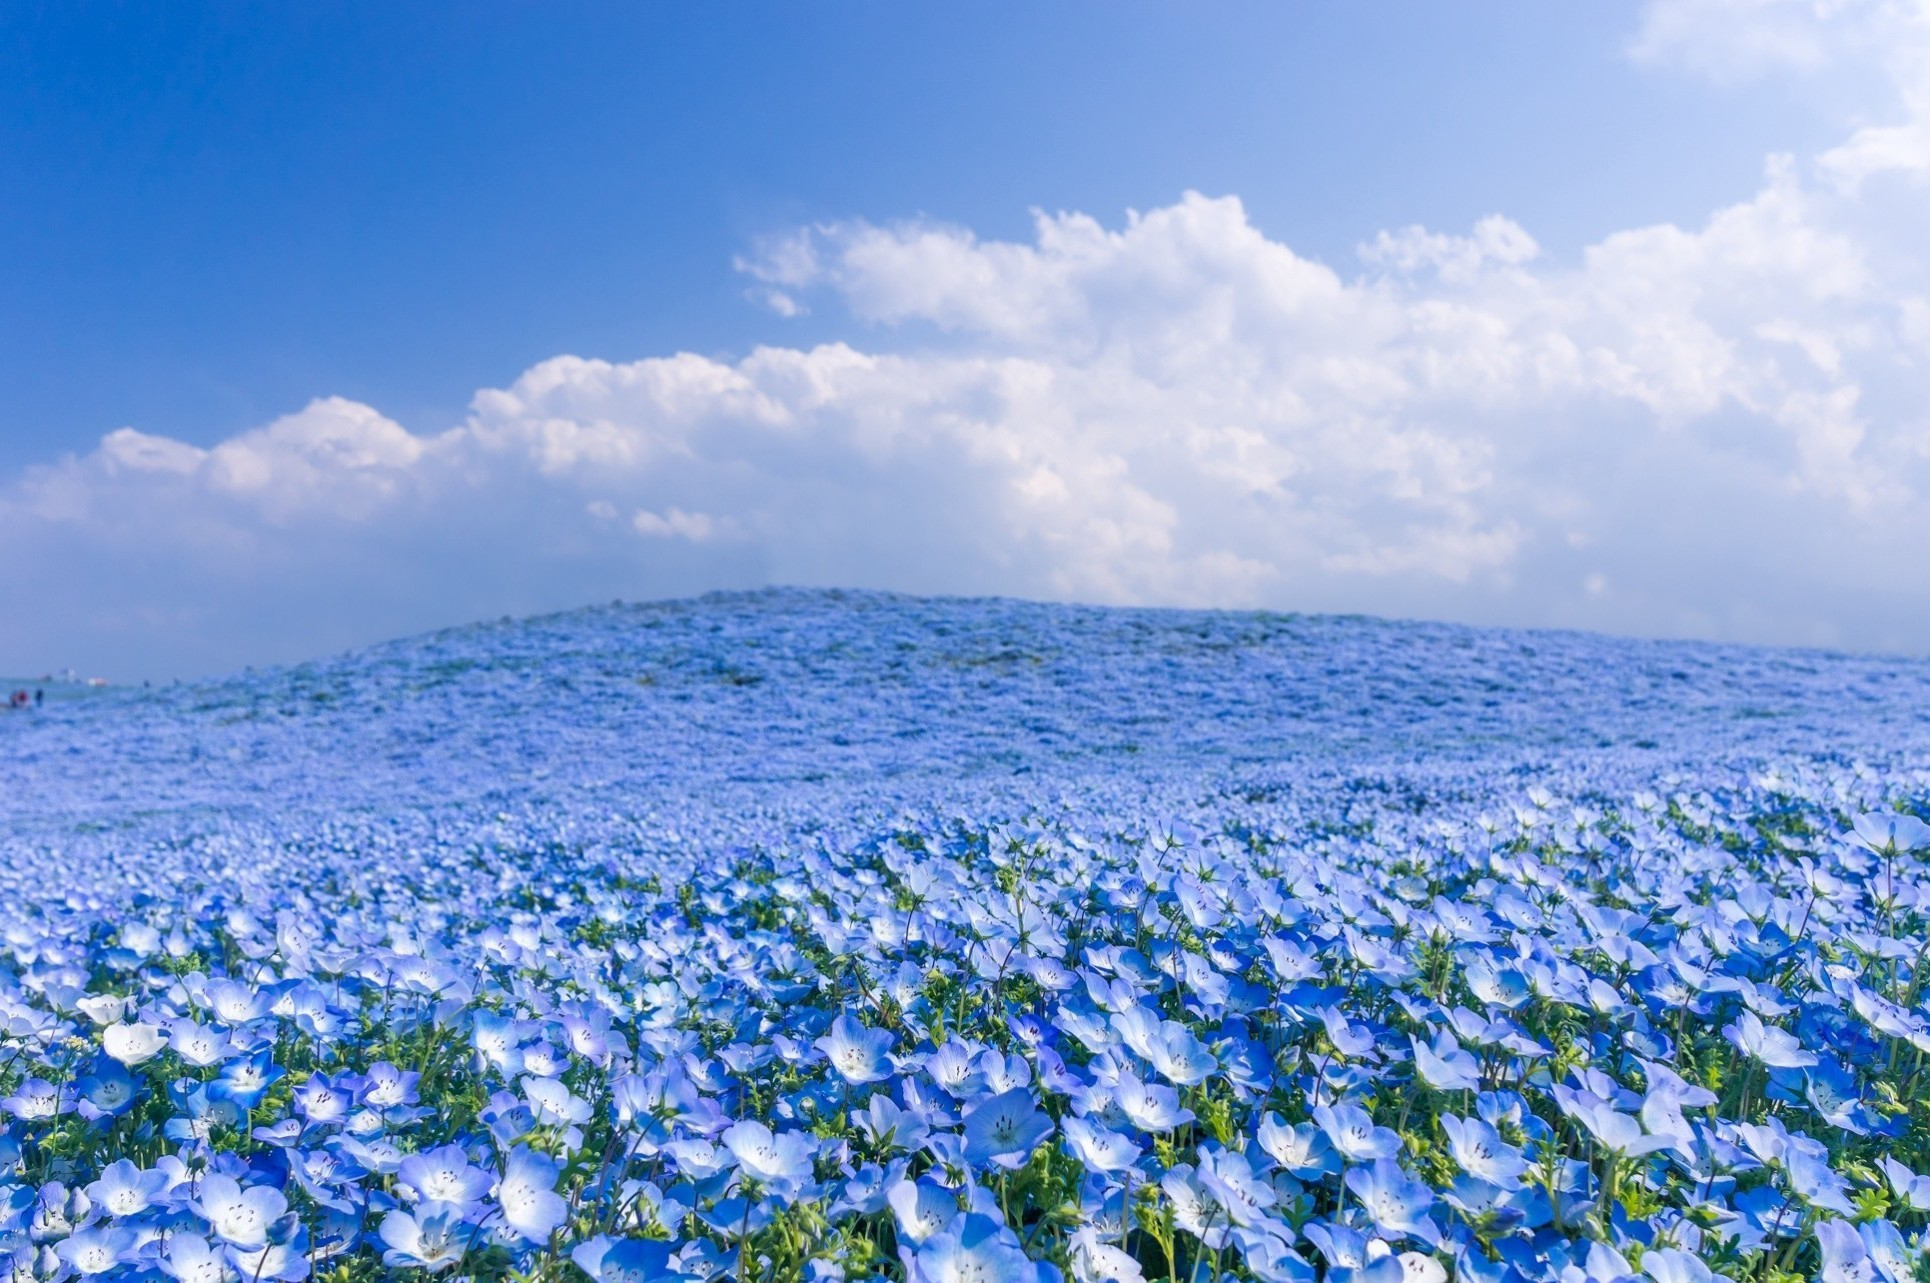 field full with blue flowers wonderful nature wallpaper